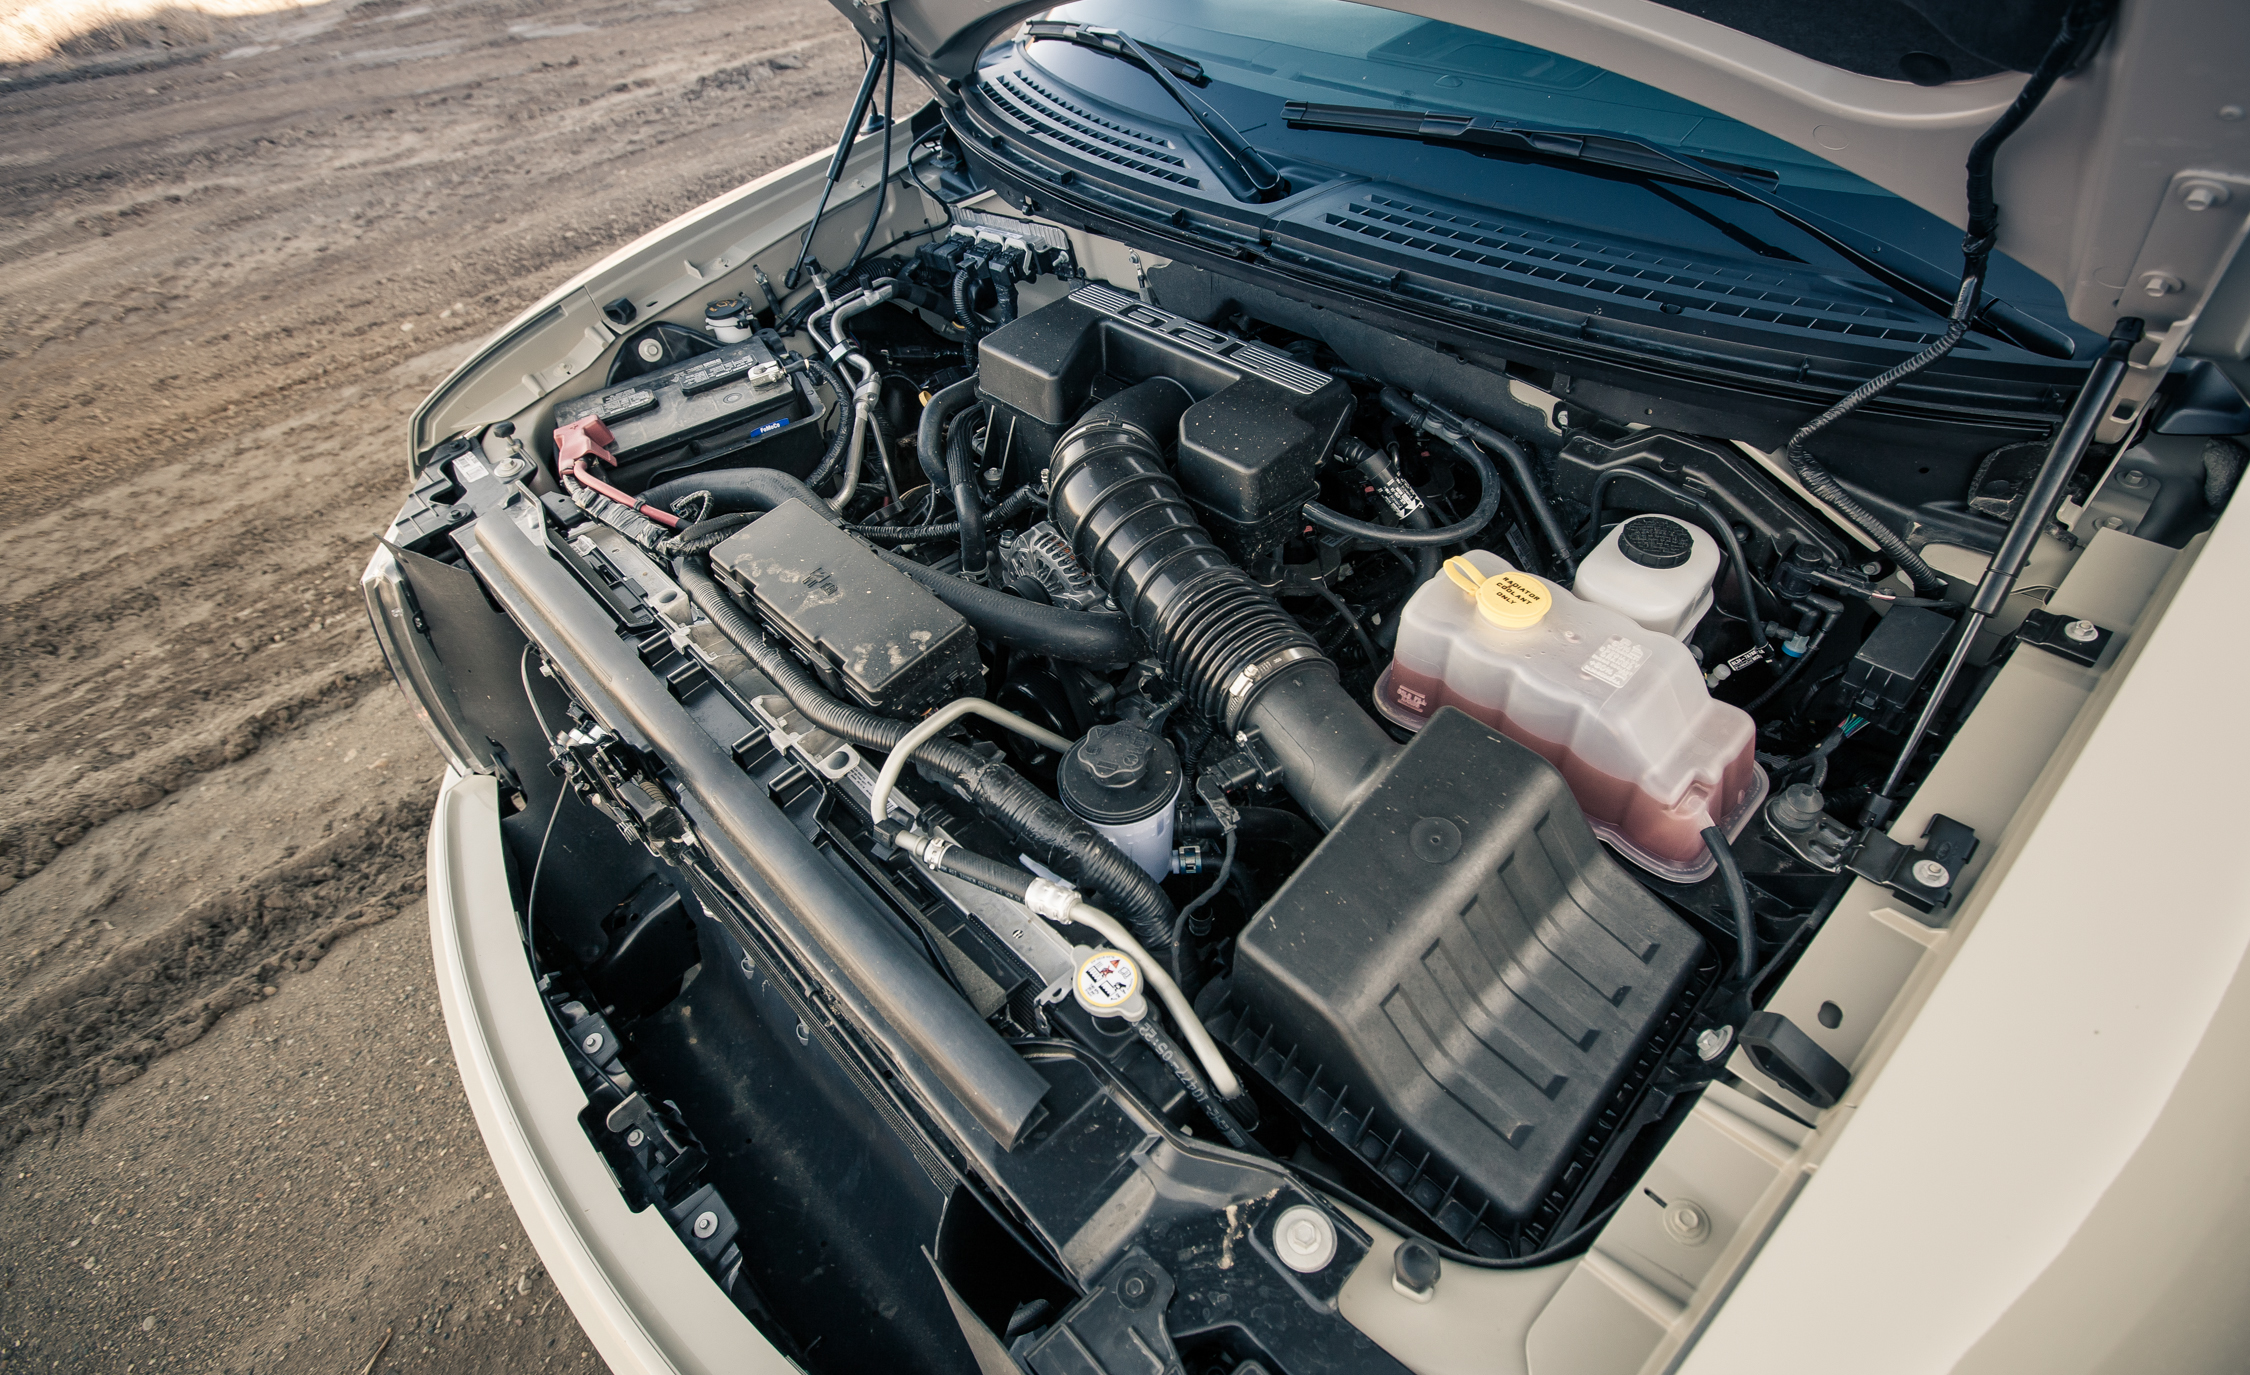 2013 Ford F 150 SVT Raptor SuperCab View Engine (Photo 31 of 39)